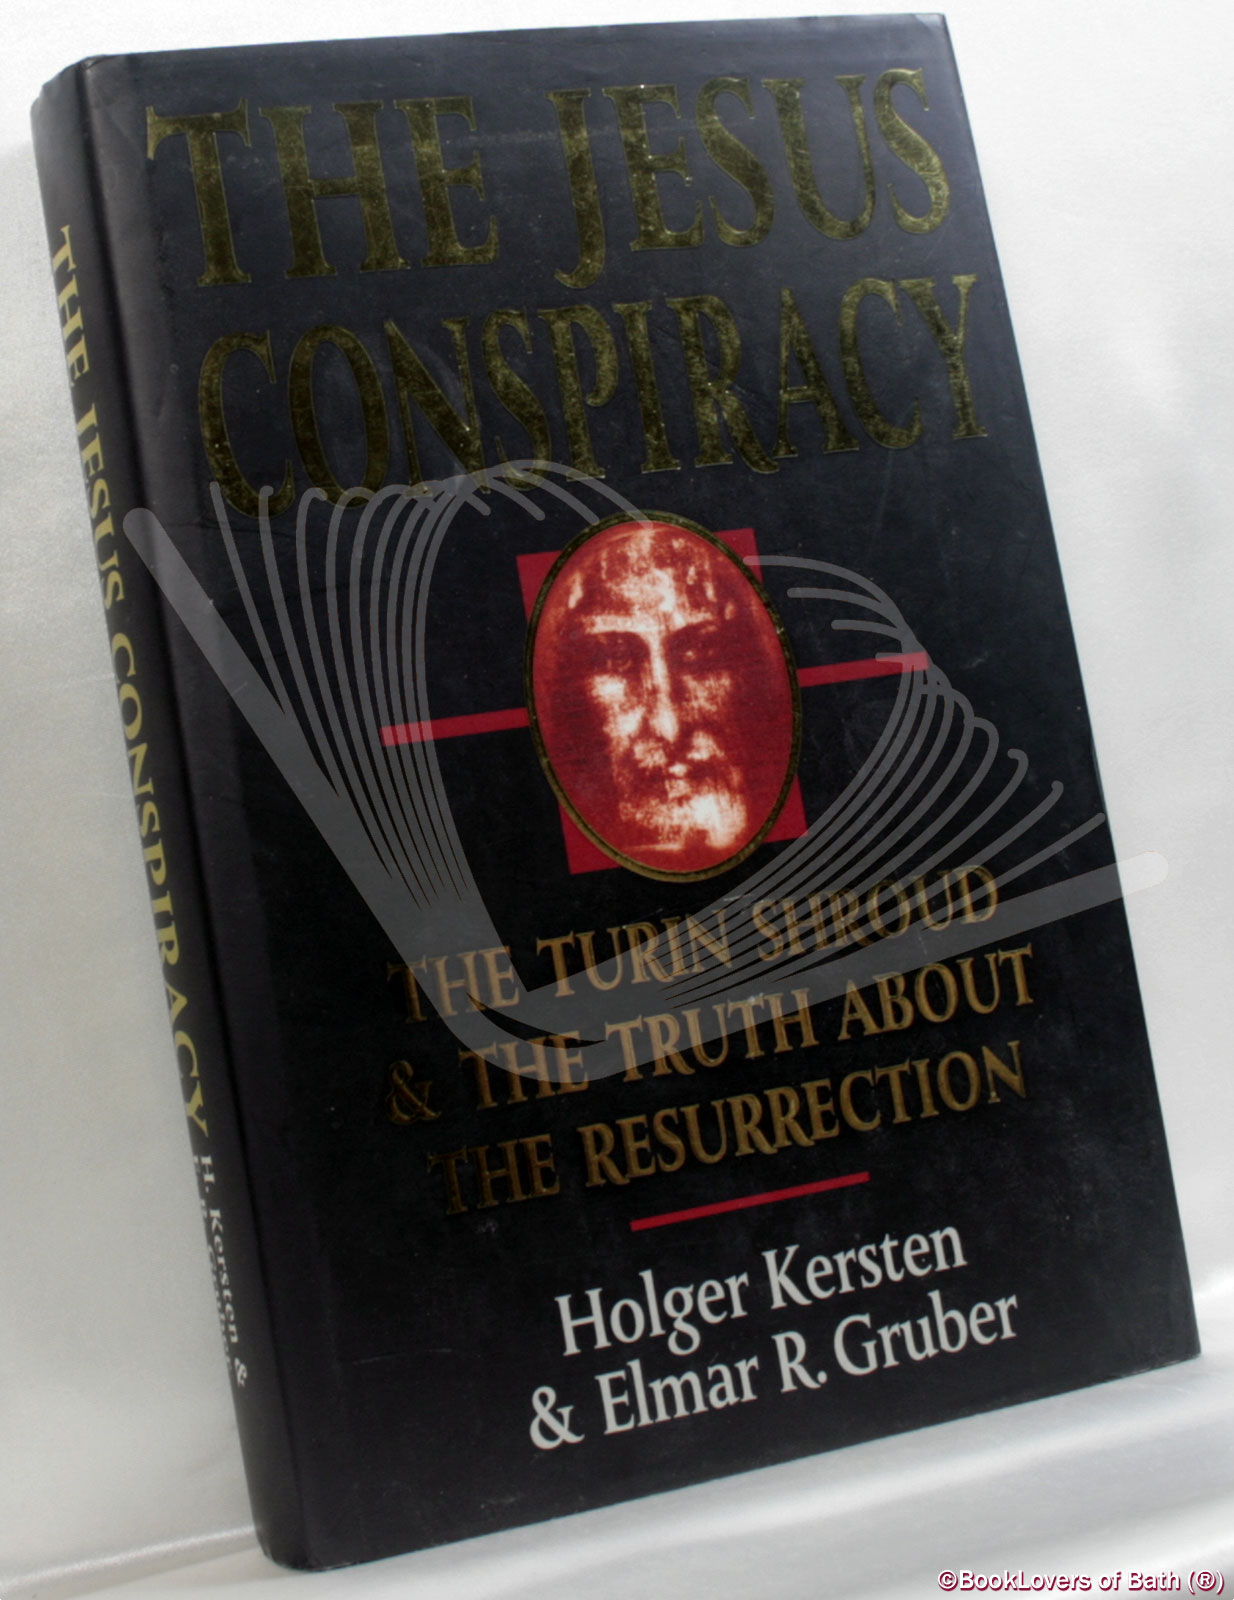 The Jesus Conspiracy: The Turin Shroud and The Truth About the Resurrection - Holger Kersten & Elmar R. Gruber